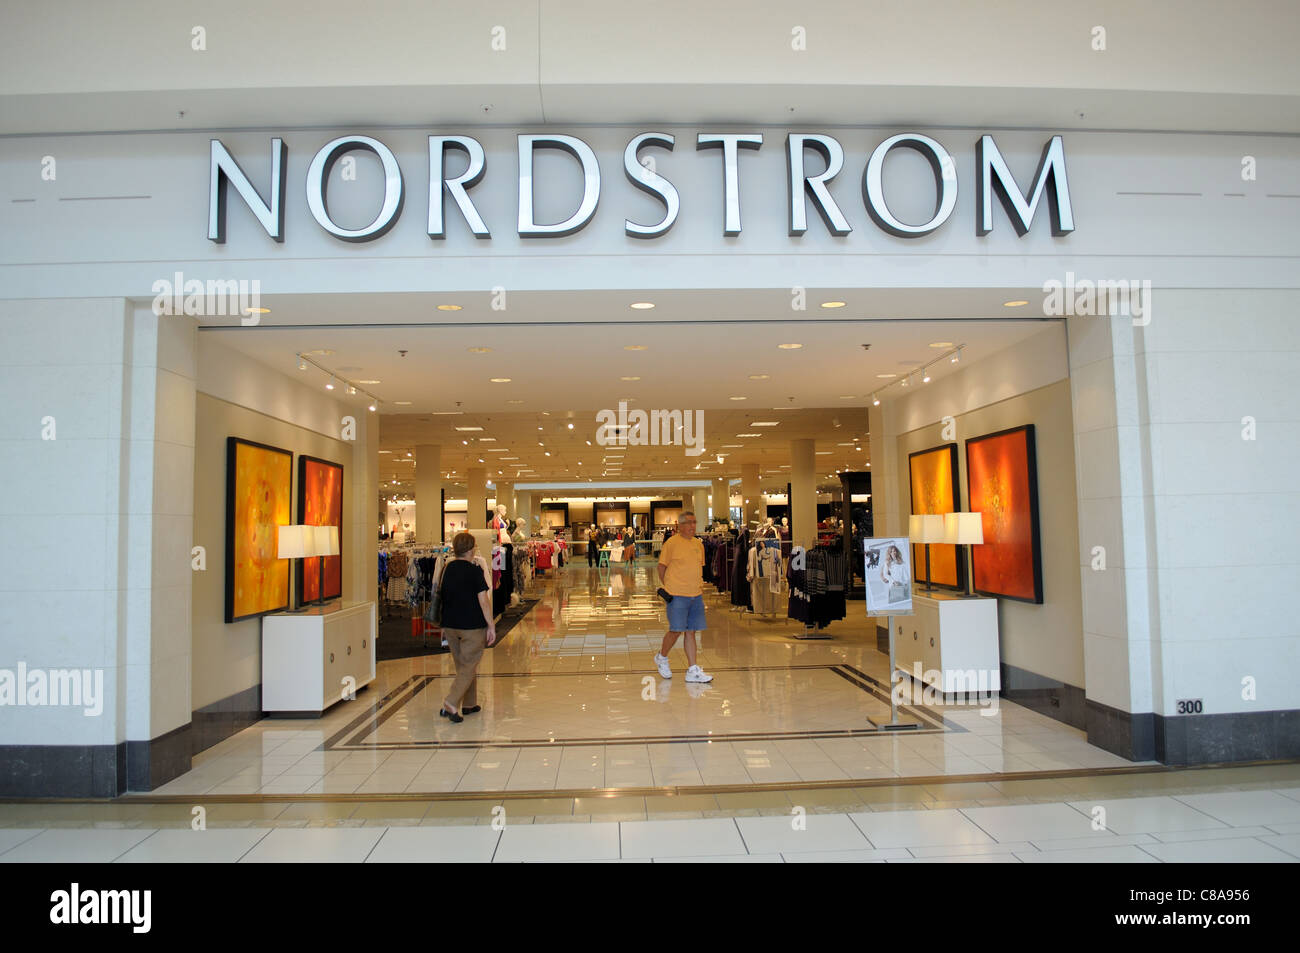 Nordstrom store in shopping mall Stock Photo: 39564706 - Alamy